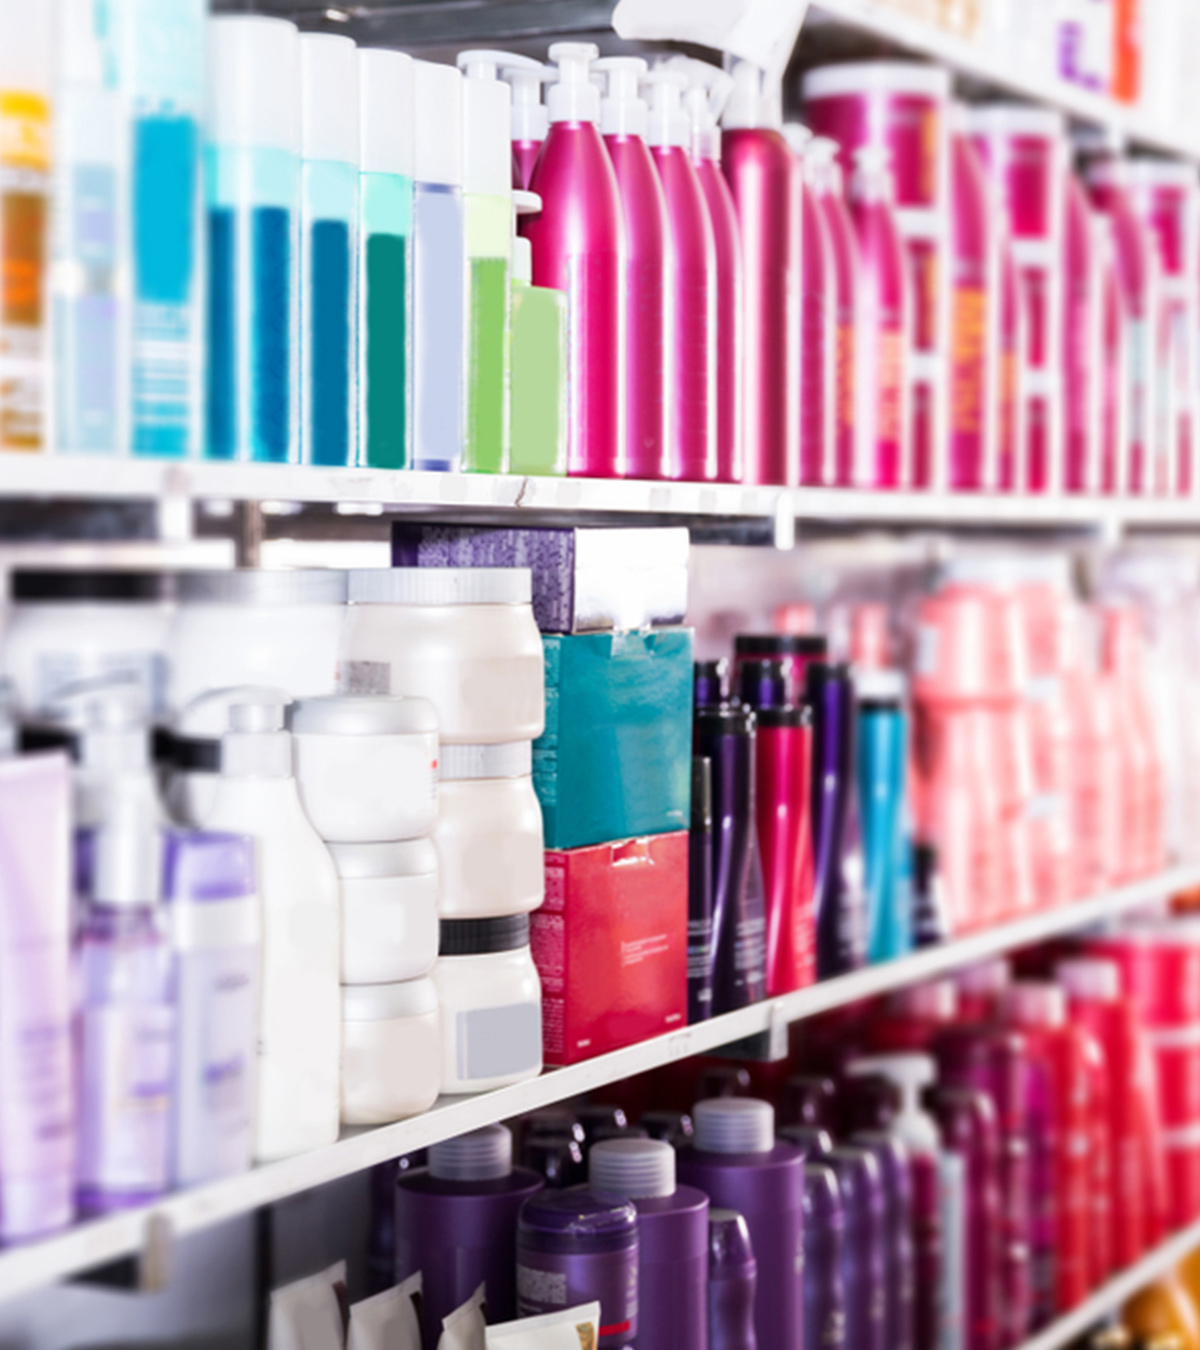 10 Popular Beauty Products That Don't Belong On Your Shelf